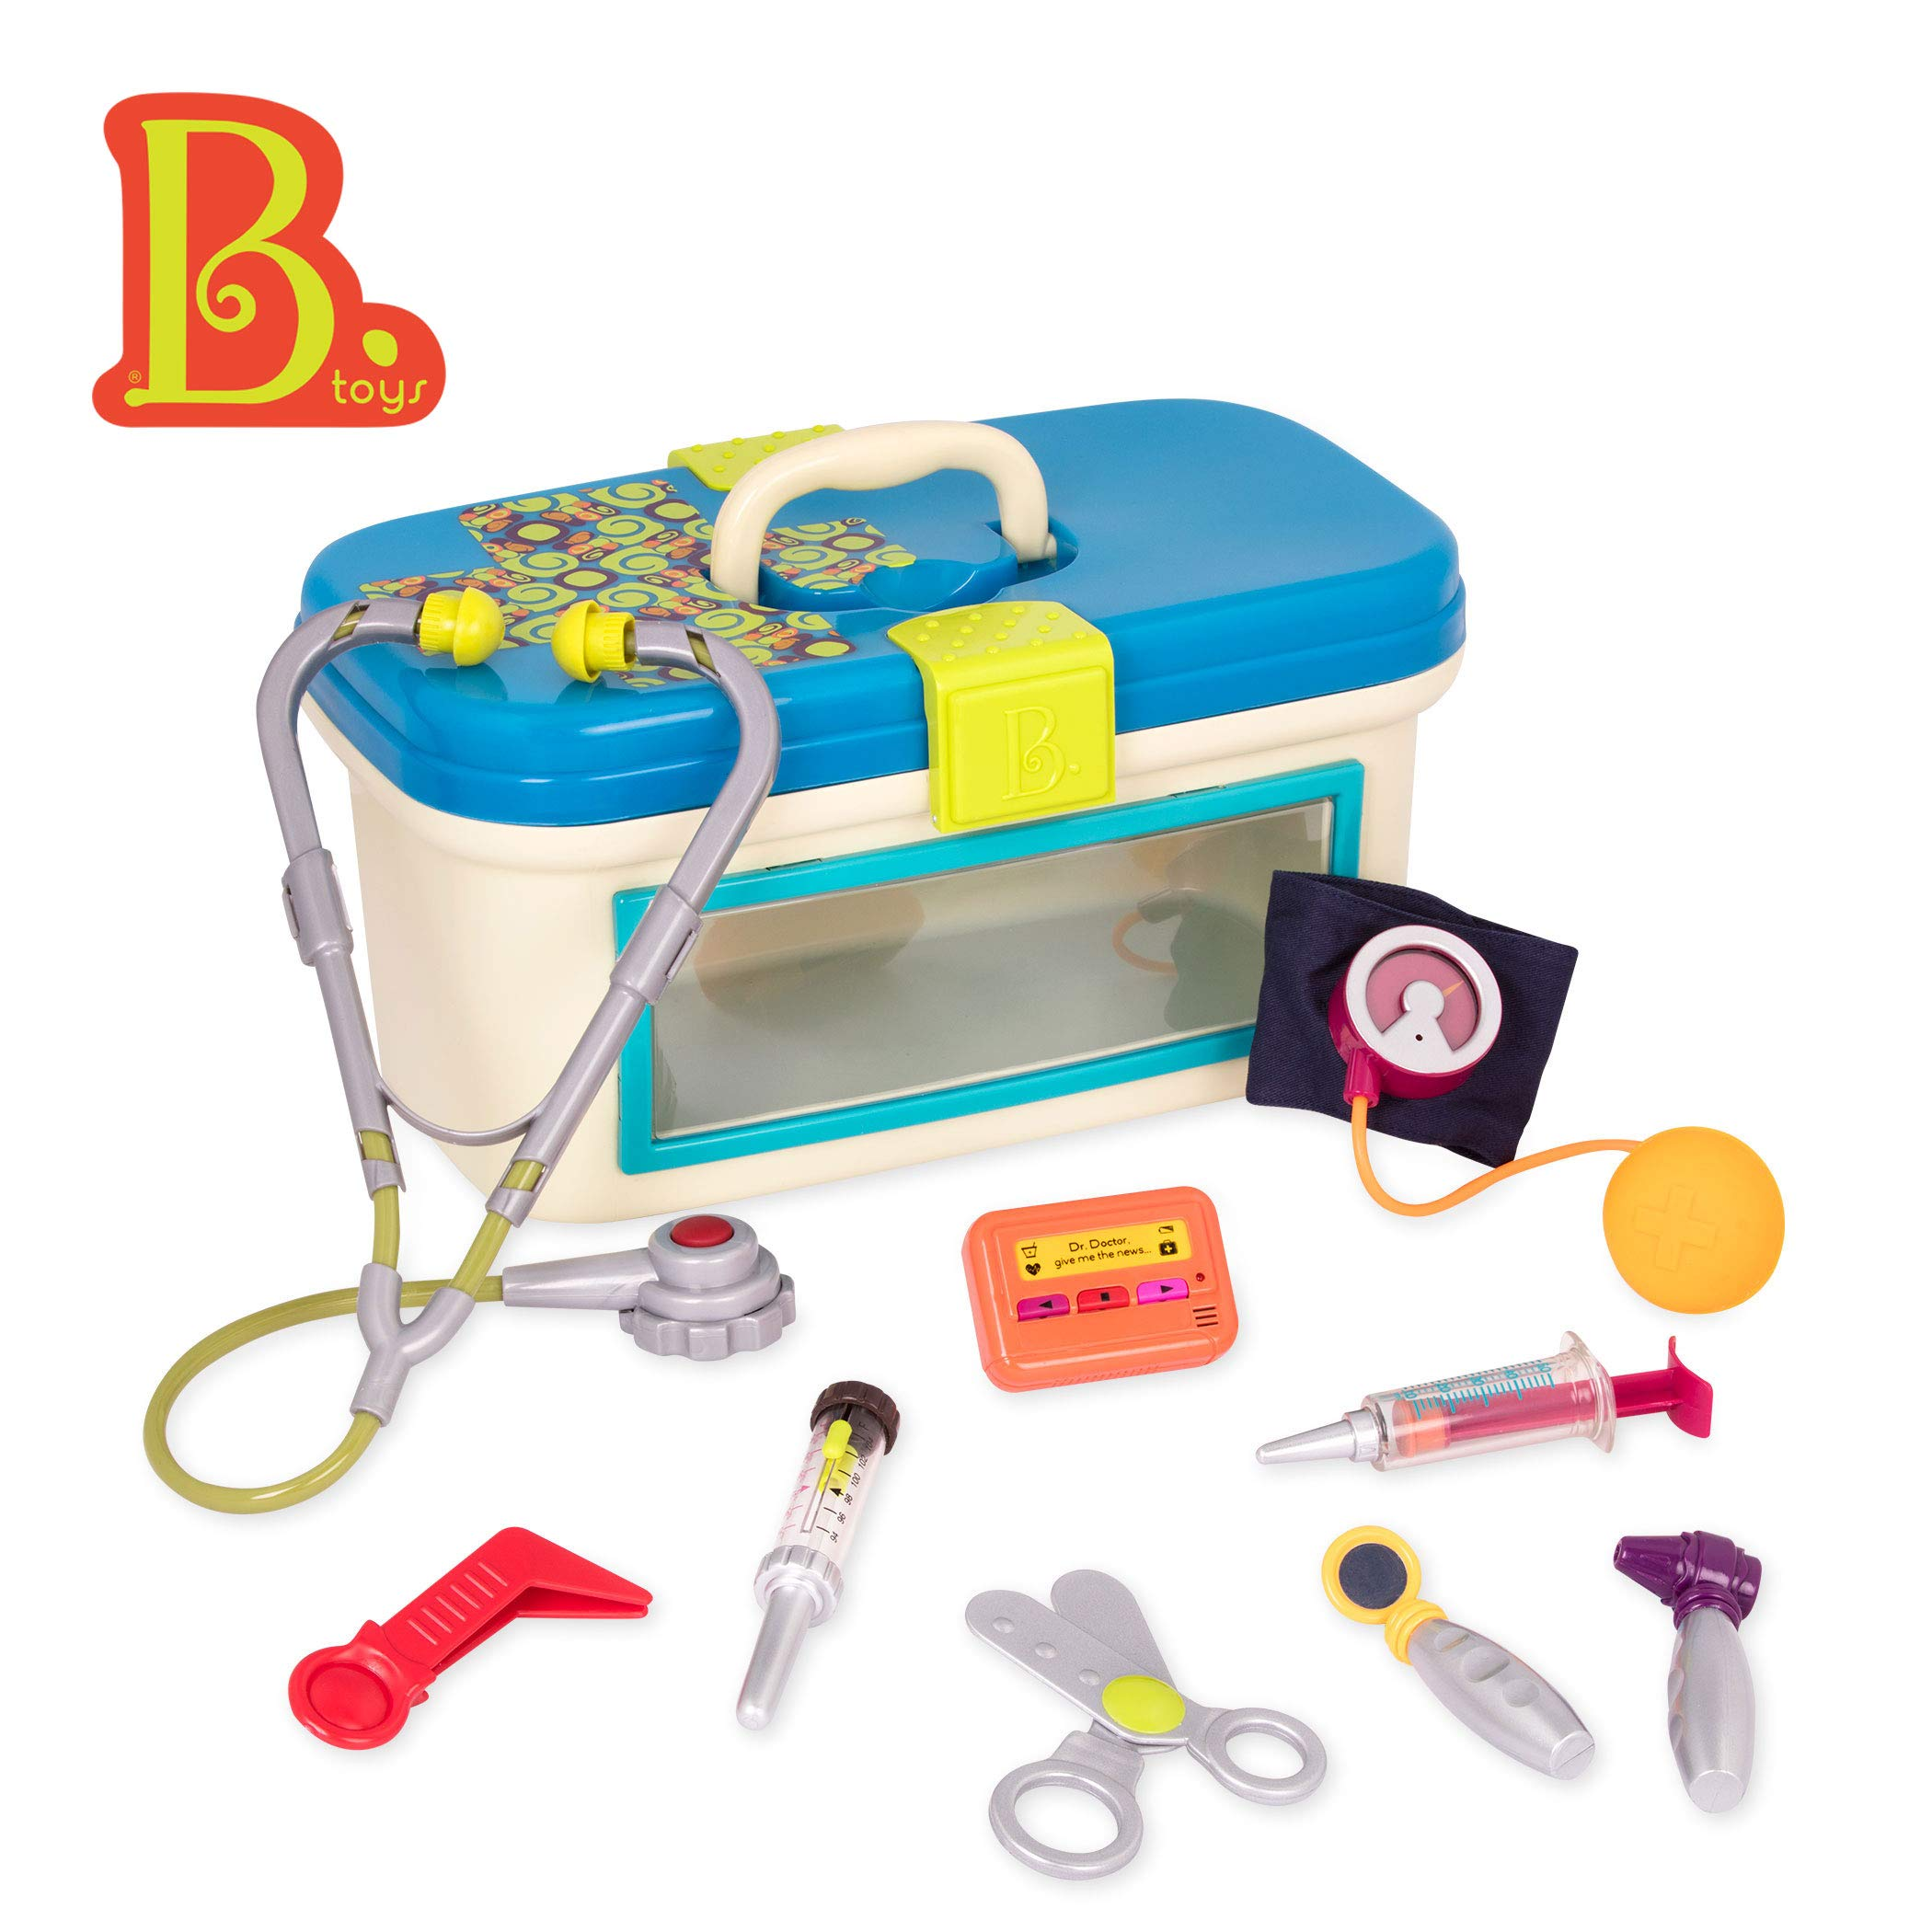 B. Toys - B. Dr. Doctor Toy - Deluxe Medical Kit for Toddlers - Pretend Play Set for Kids (10Piece) by B. toys by Battat